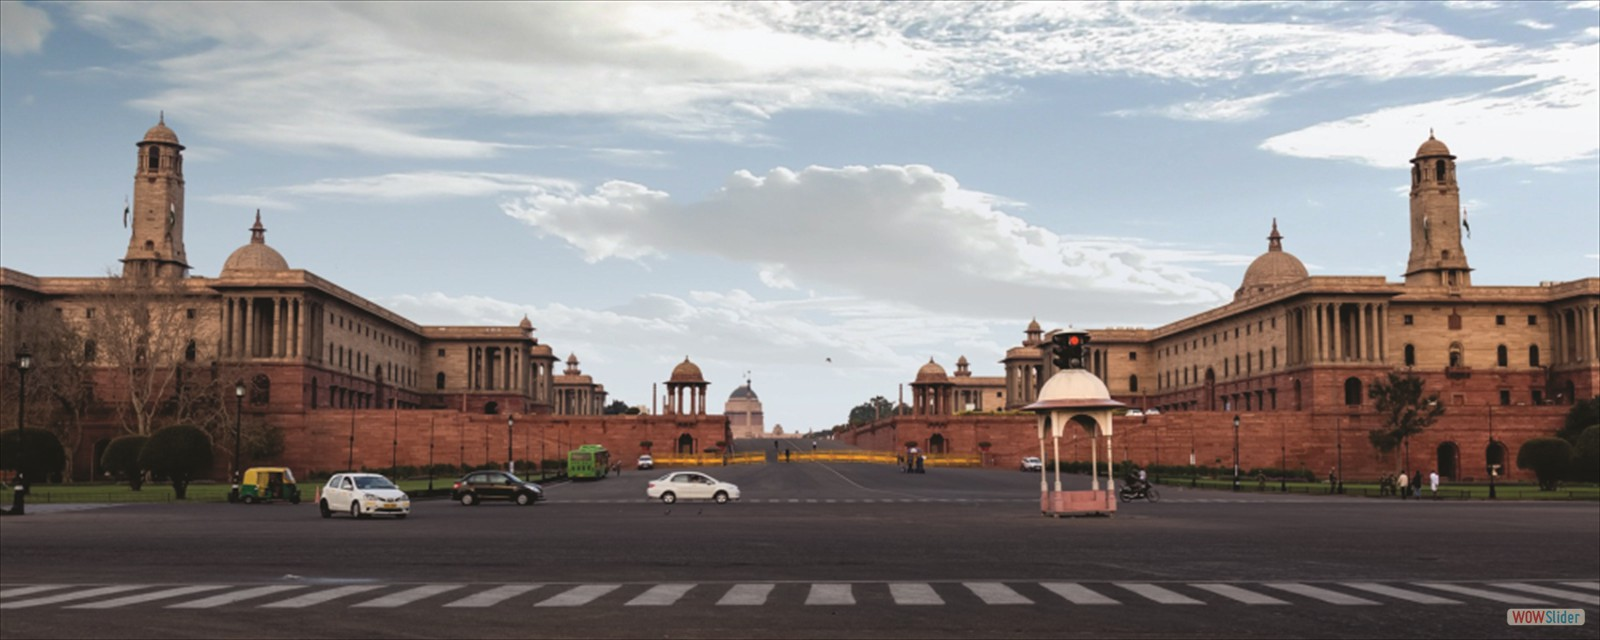 Delhi, The Heart of India